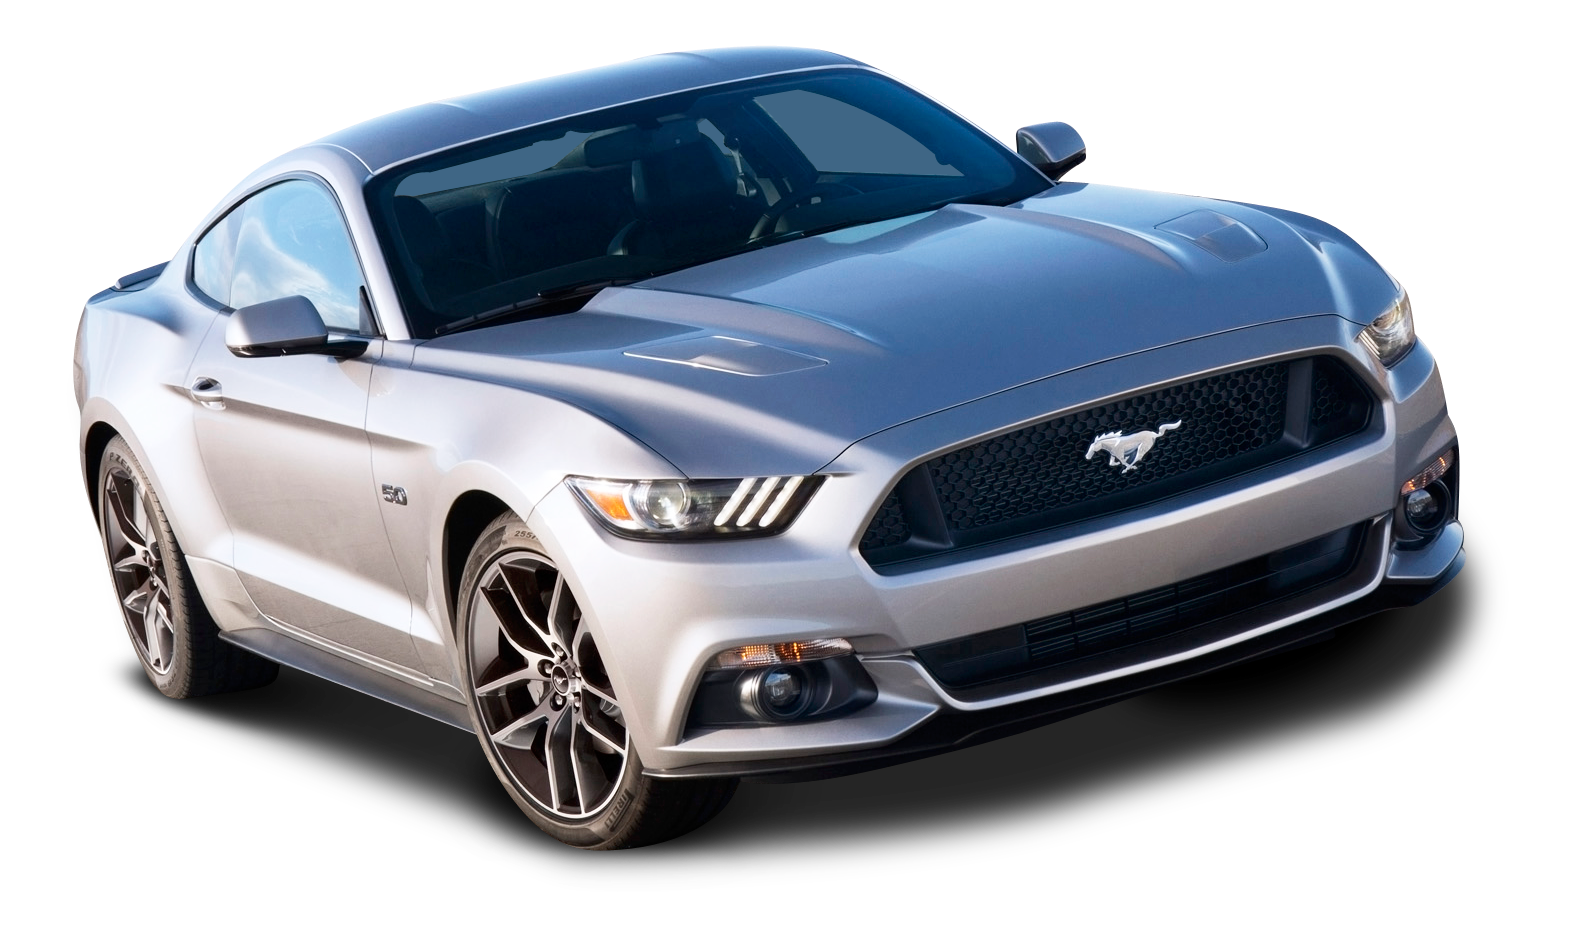 Ford Mustang Silver Car PNG Image